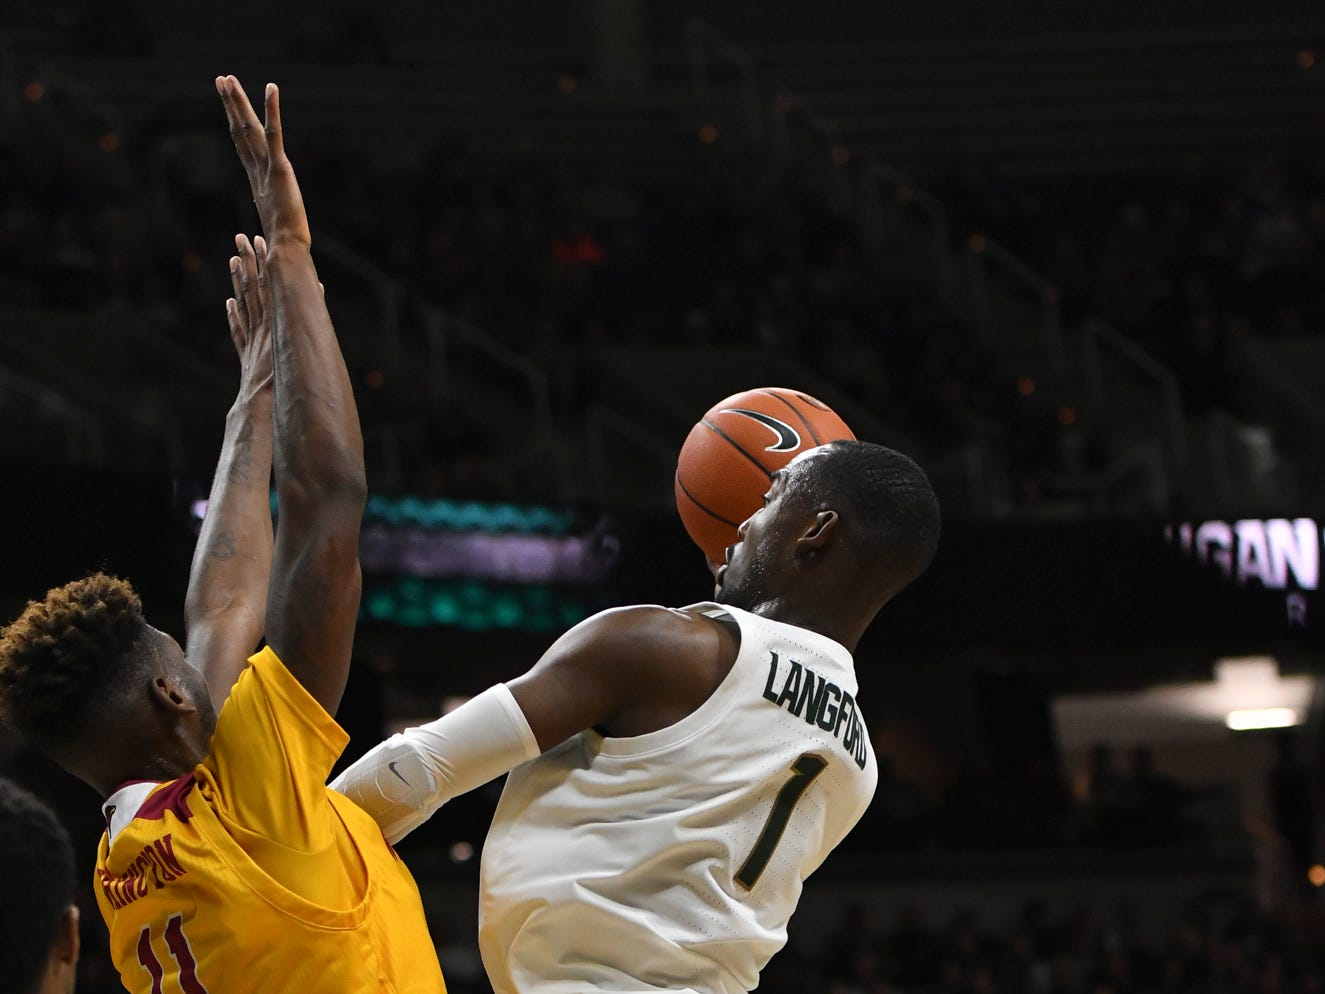 MSU's Jeremy Langford works the paint against ULM's Andre Washington, Wednesday, Nov. 14, 2018, in the Breslin Center.